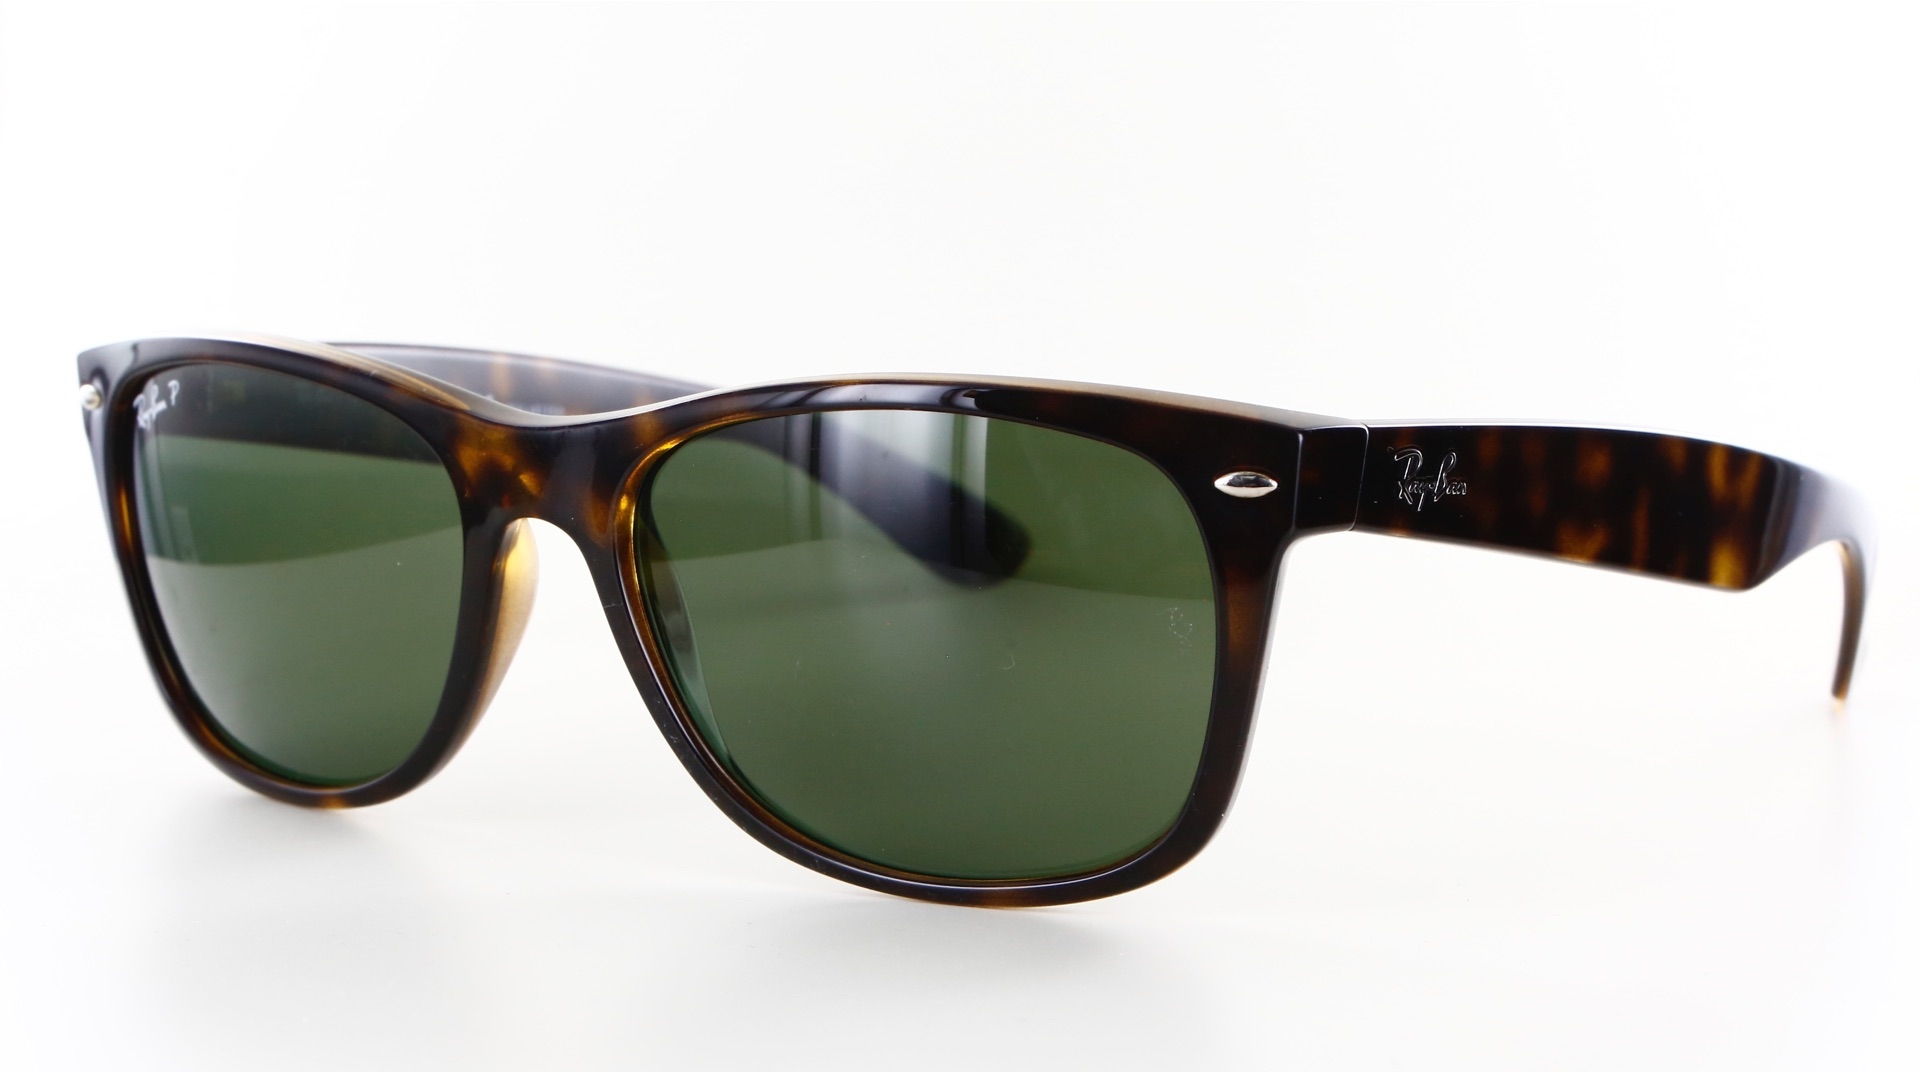 Ray-Ban - ref: 62792